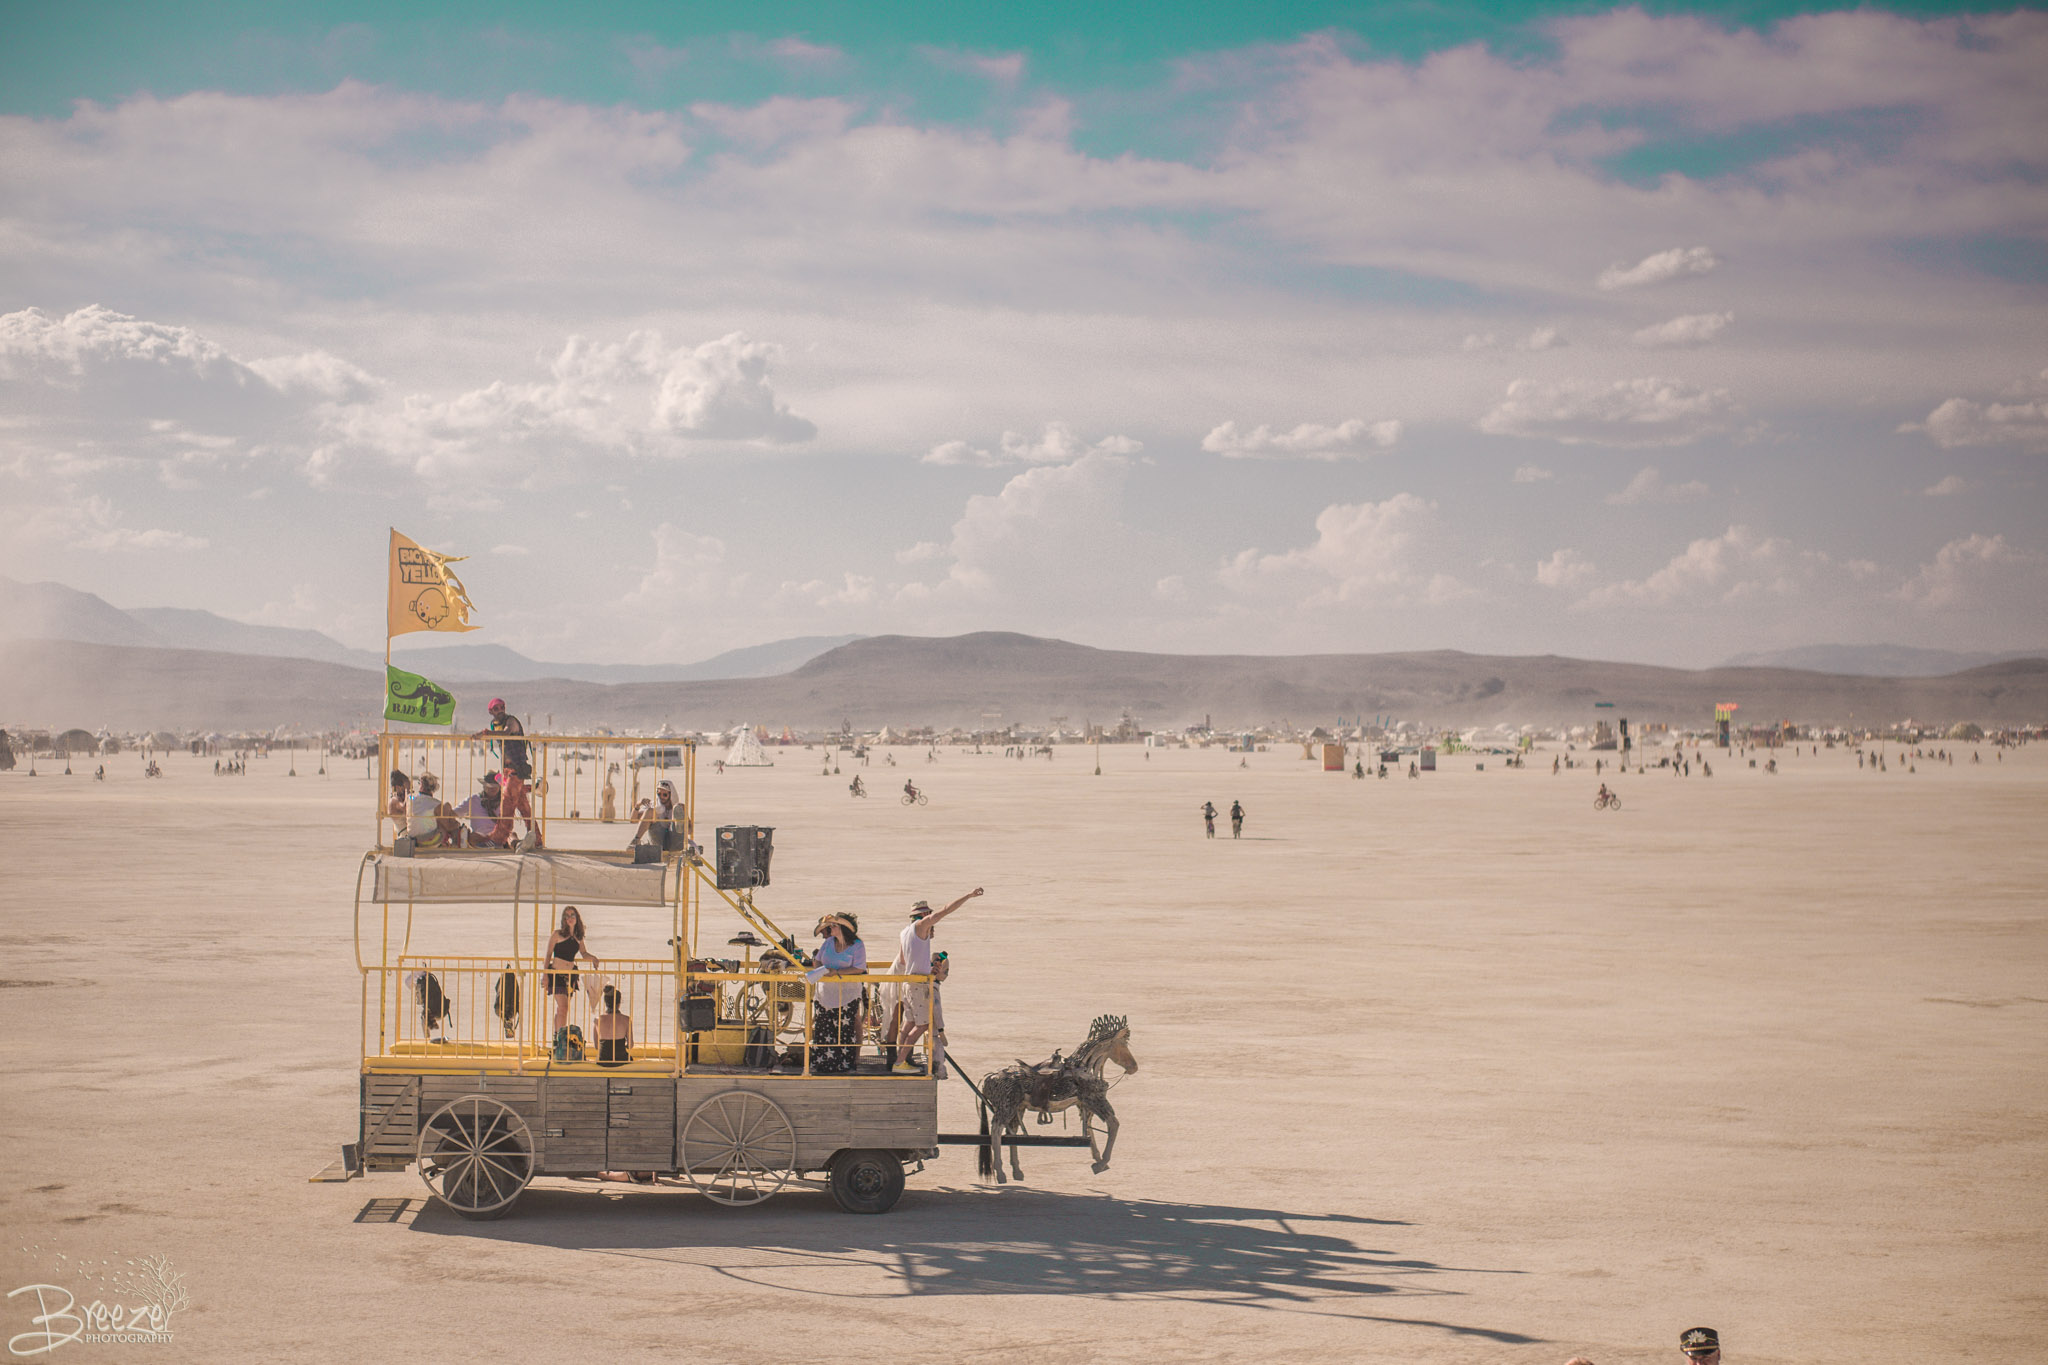 Brie'Ana Breeze Photography & Media - Burning Man 2018-3823.jpg